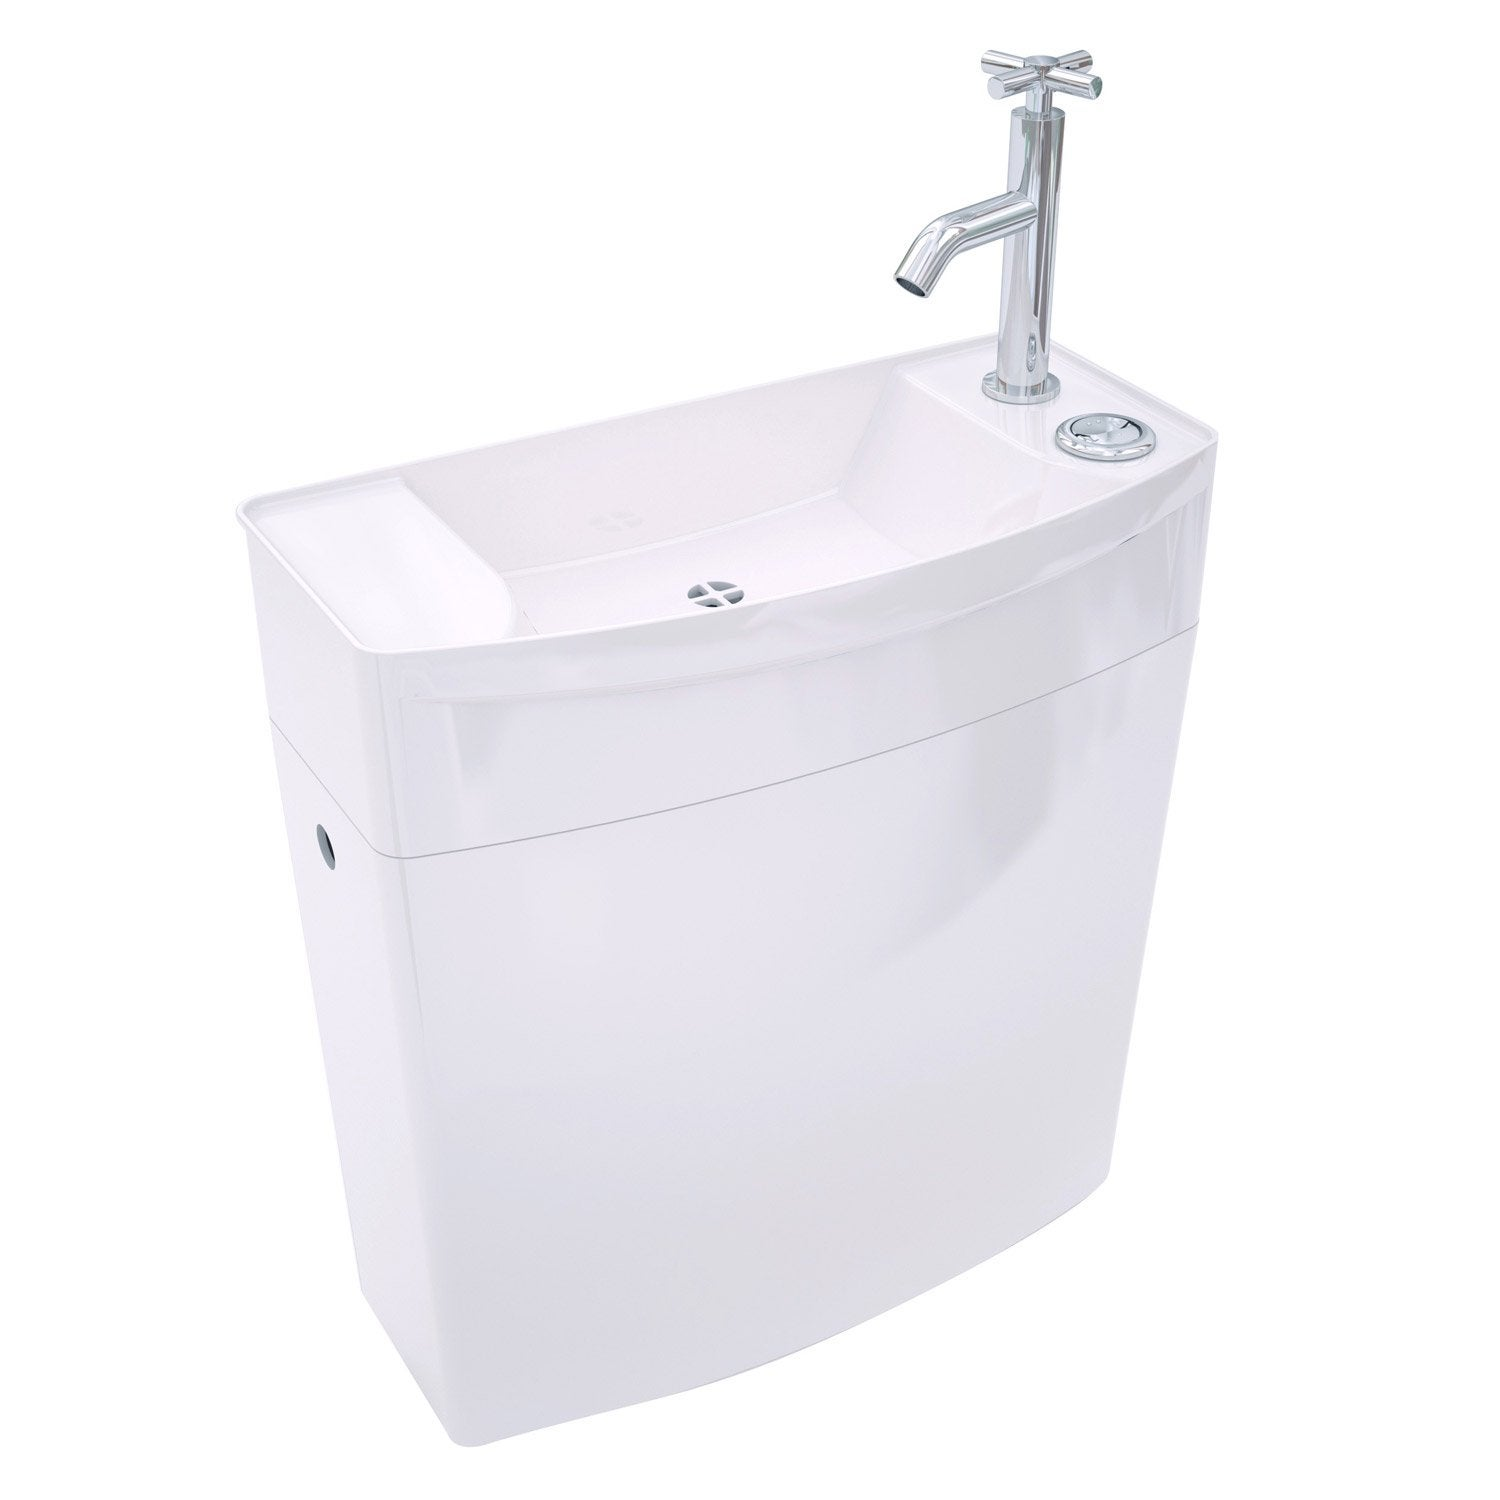 R servoir bas wc wirquin leroy merlin for Petit toilette leroy merlin